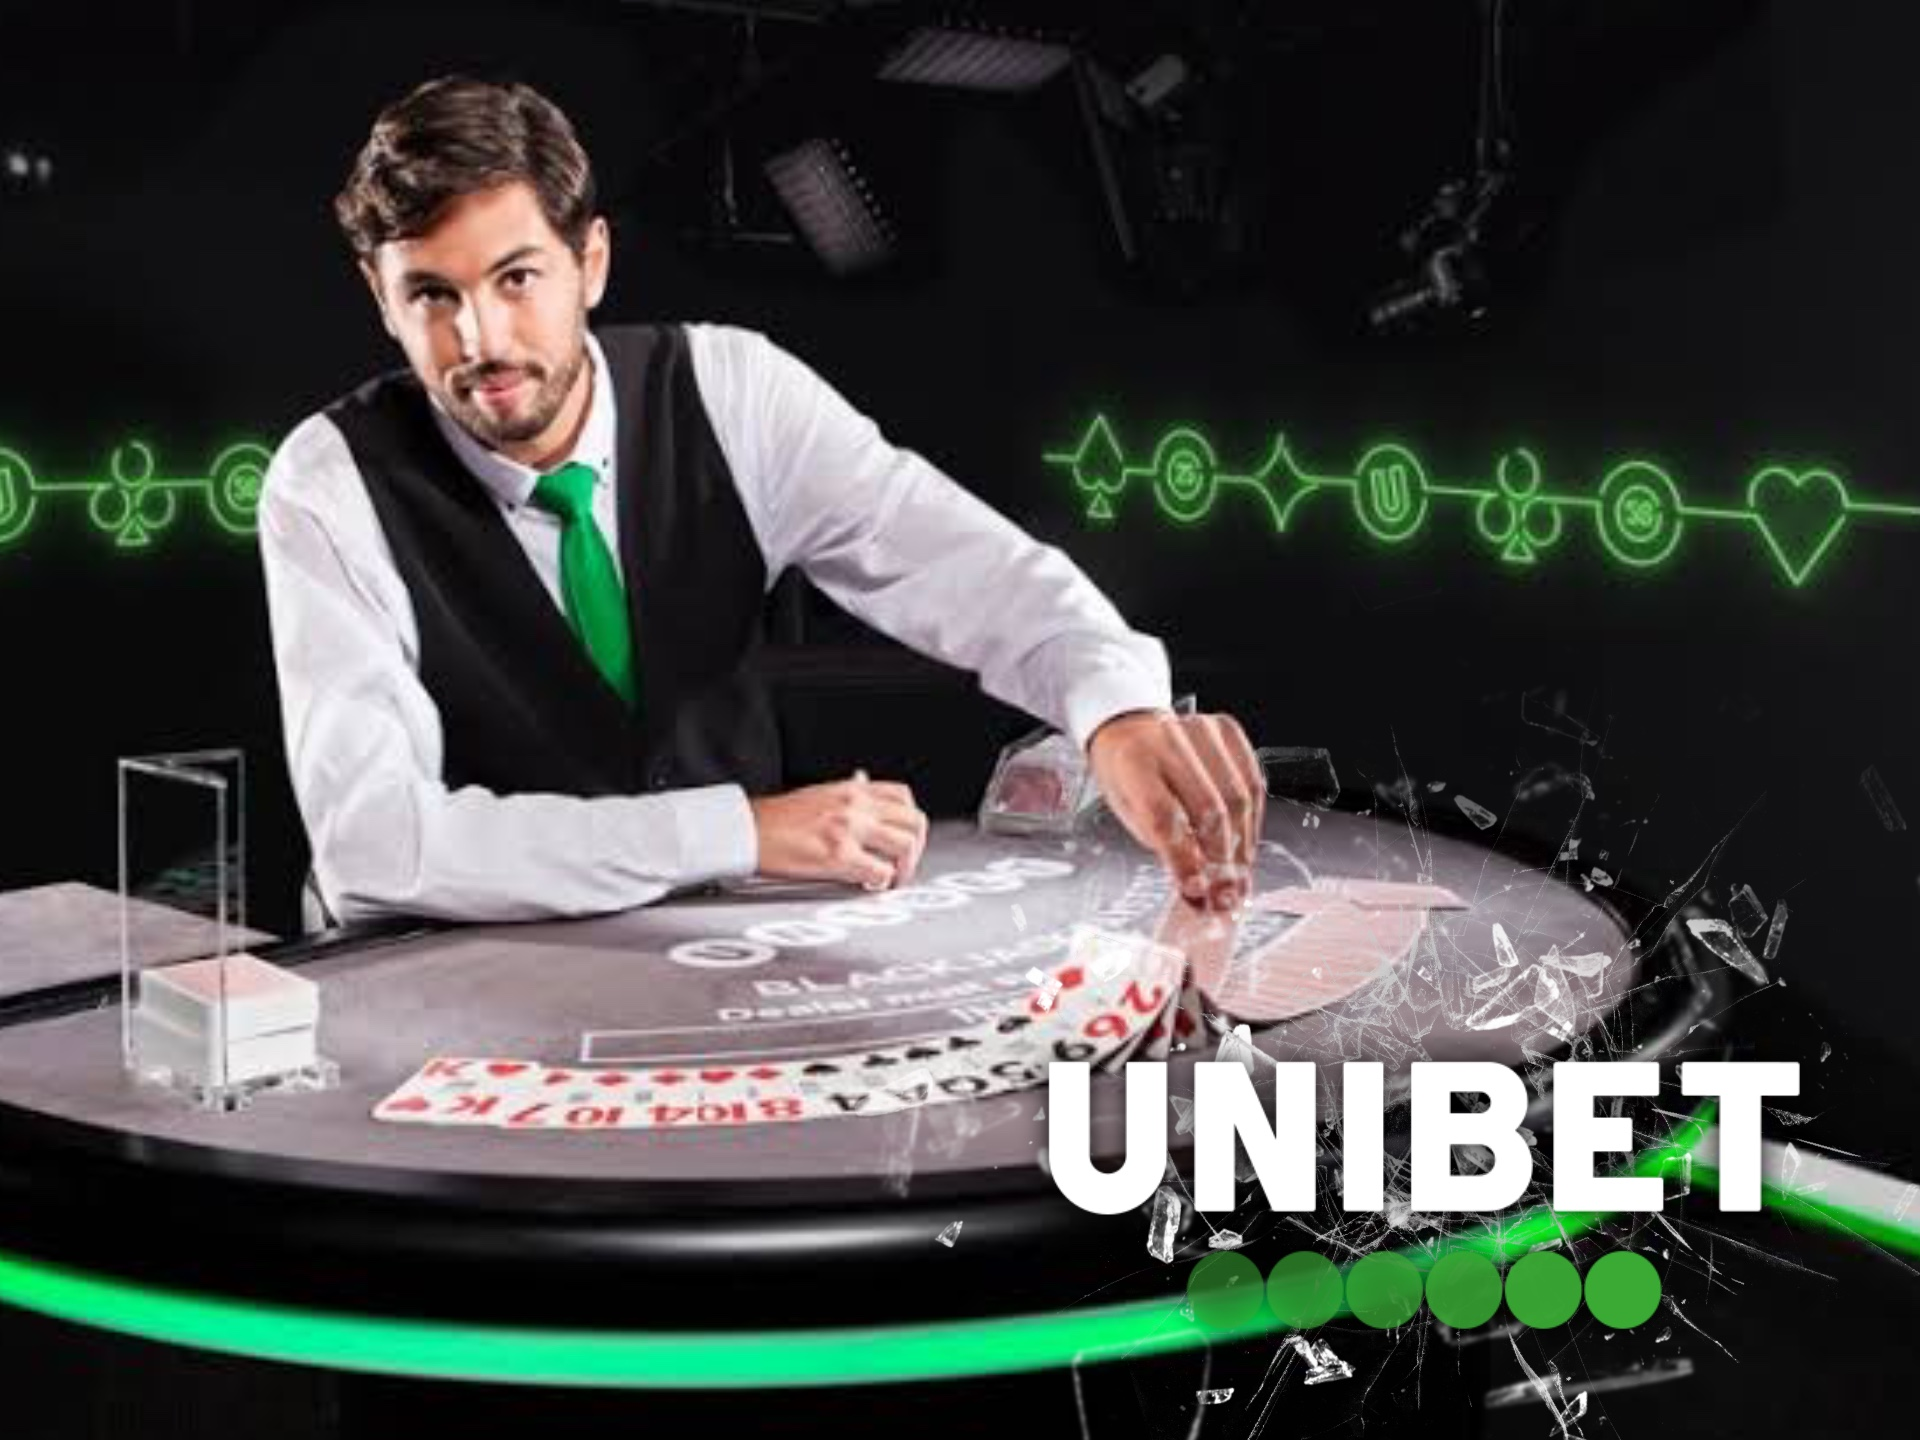 Try to win a real dealer at Unibet live casino.